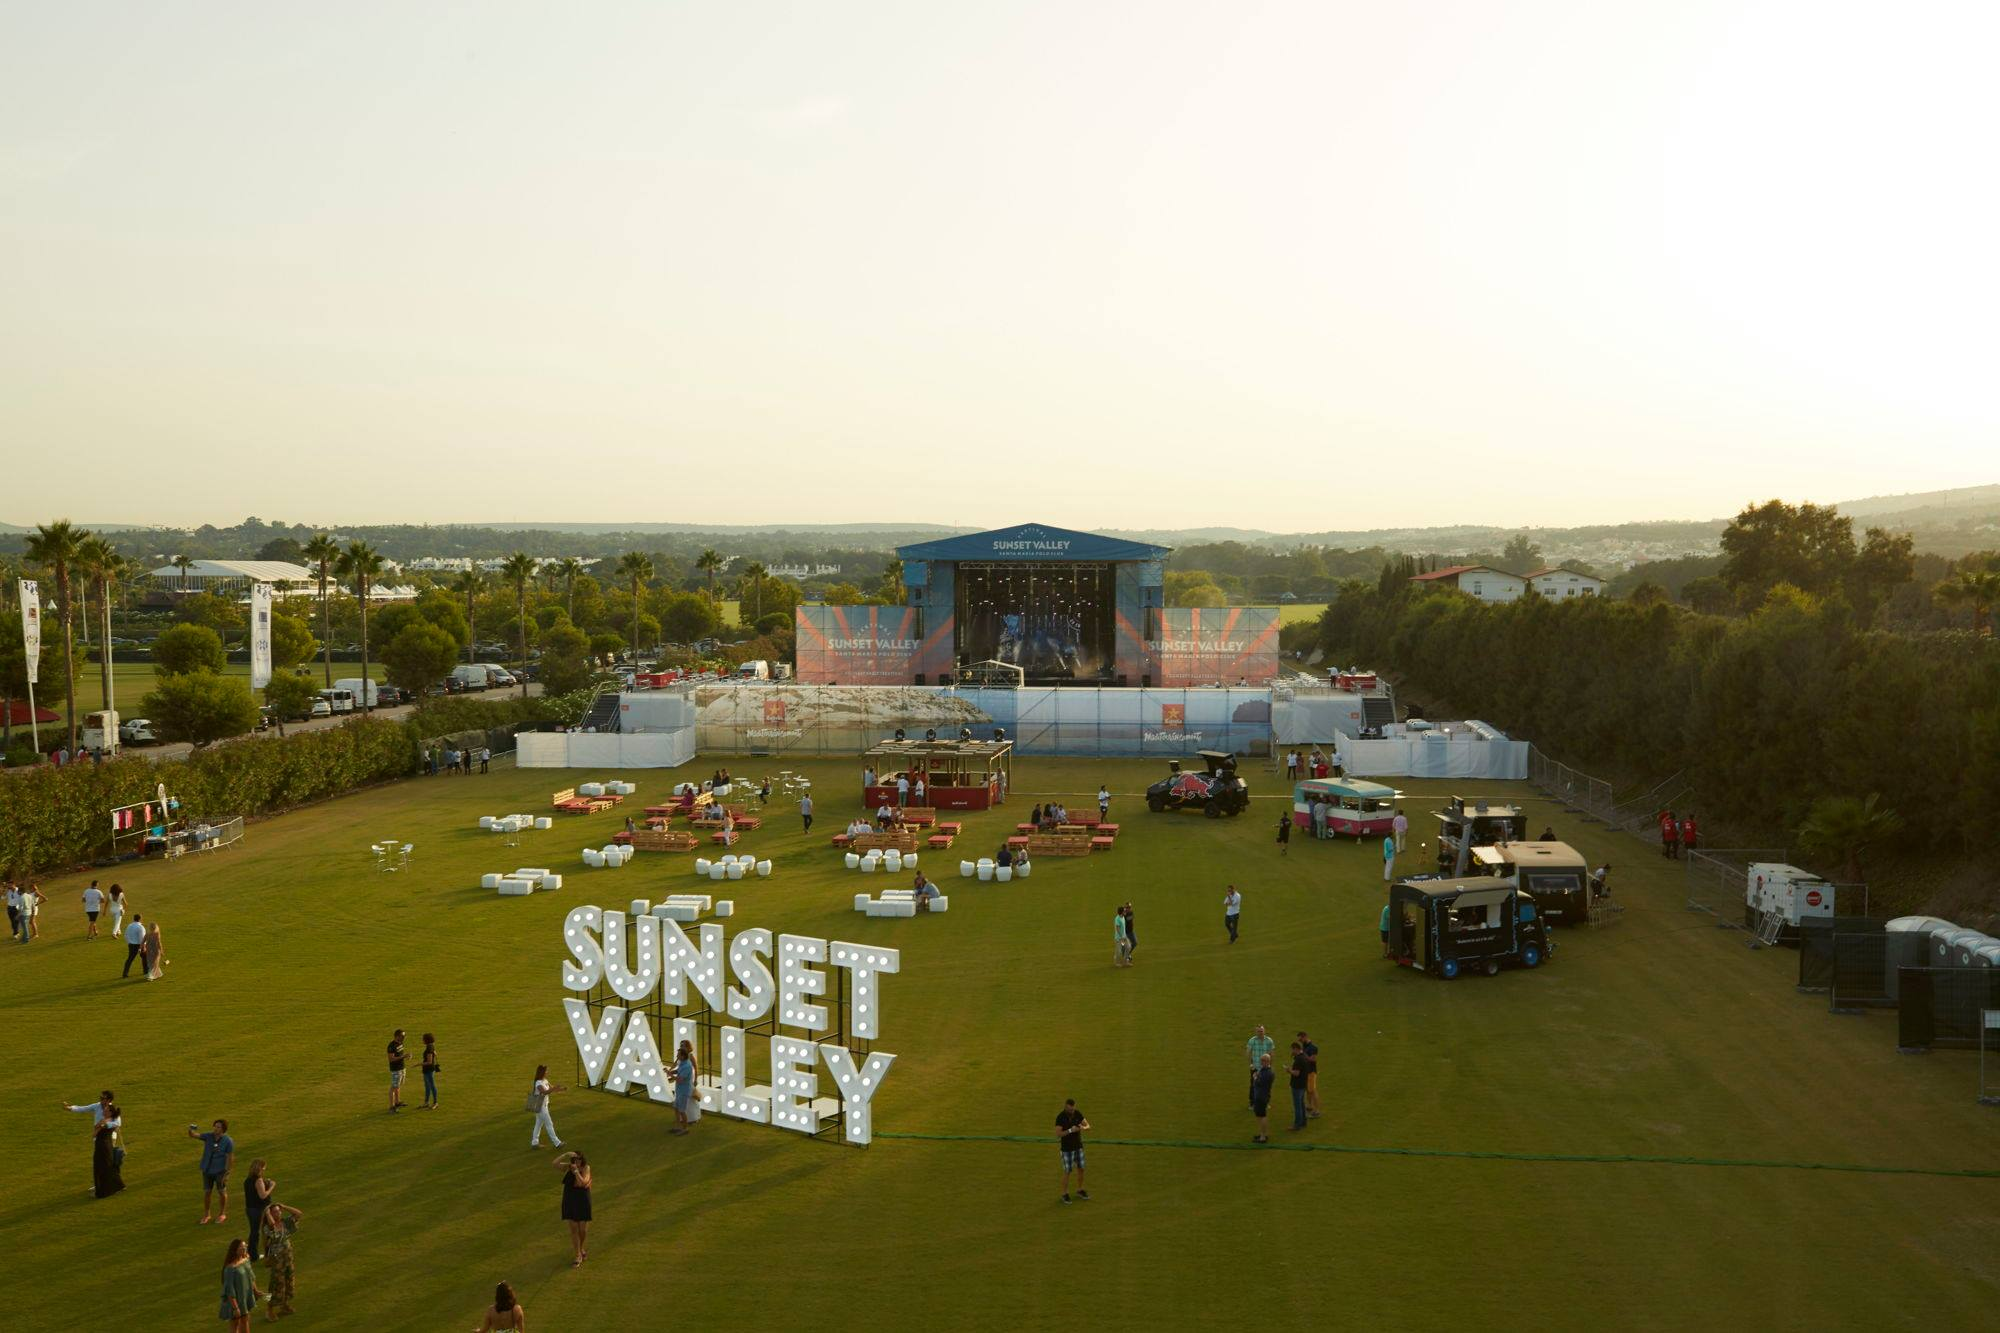 Flower Party at Sunset Valley Festival in Sotogrande Summer 2018